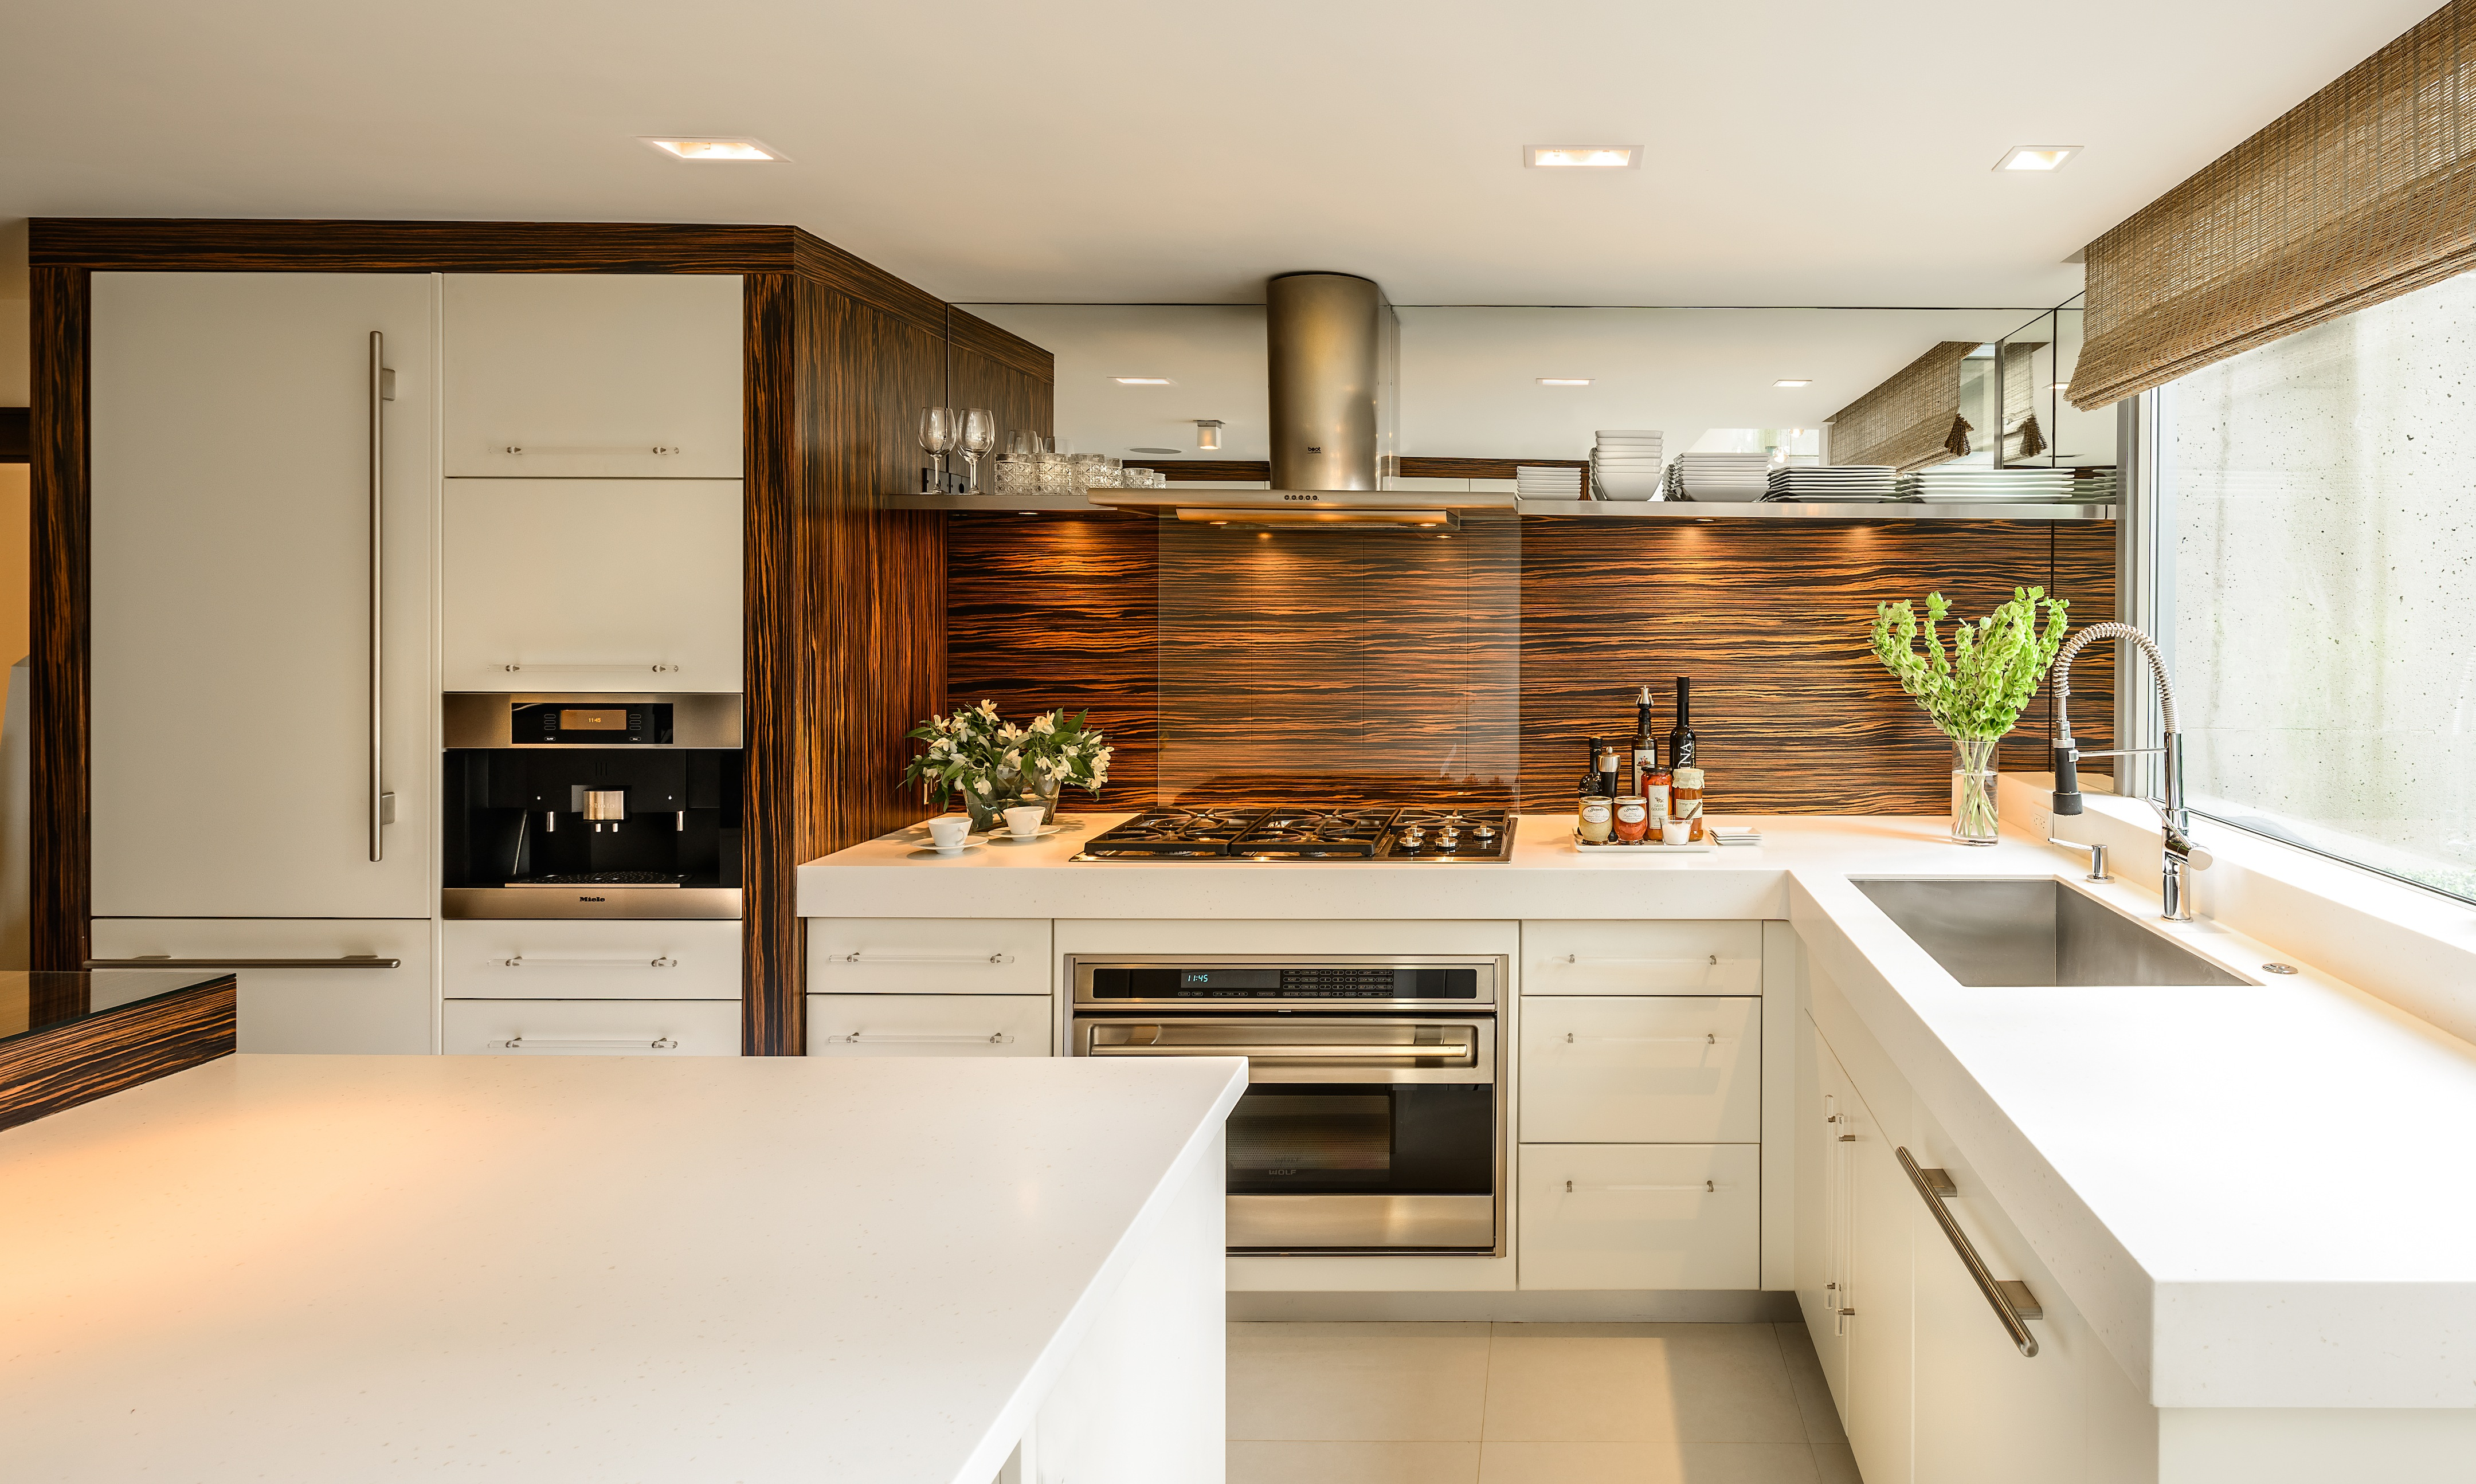 kitchen design ideas kitchen design ideas Source